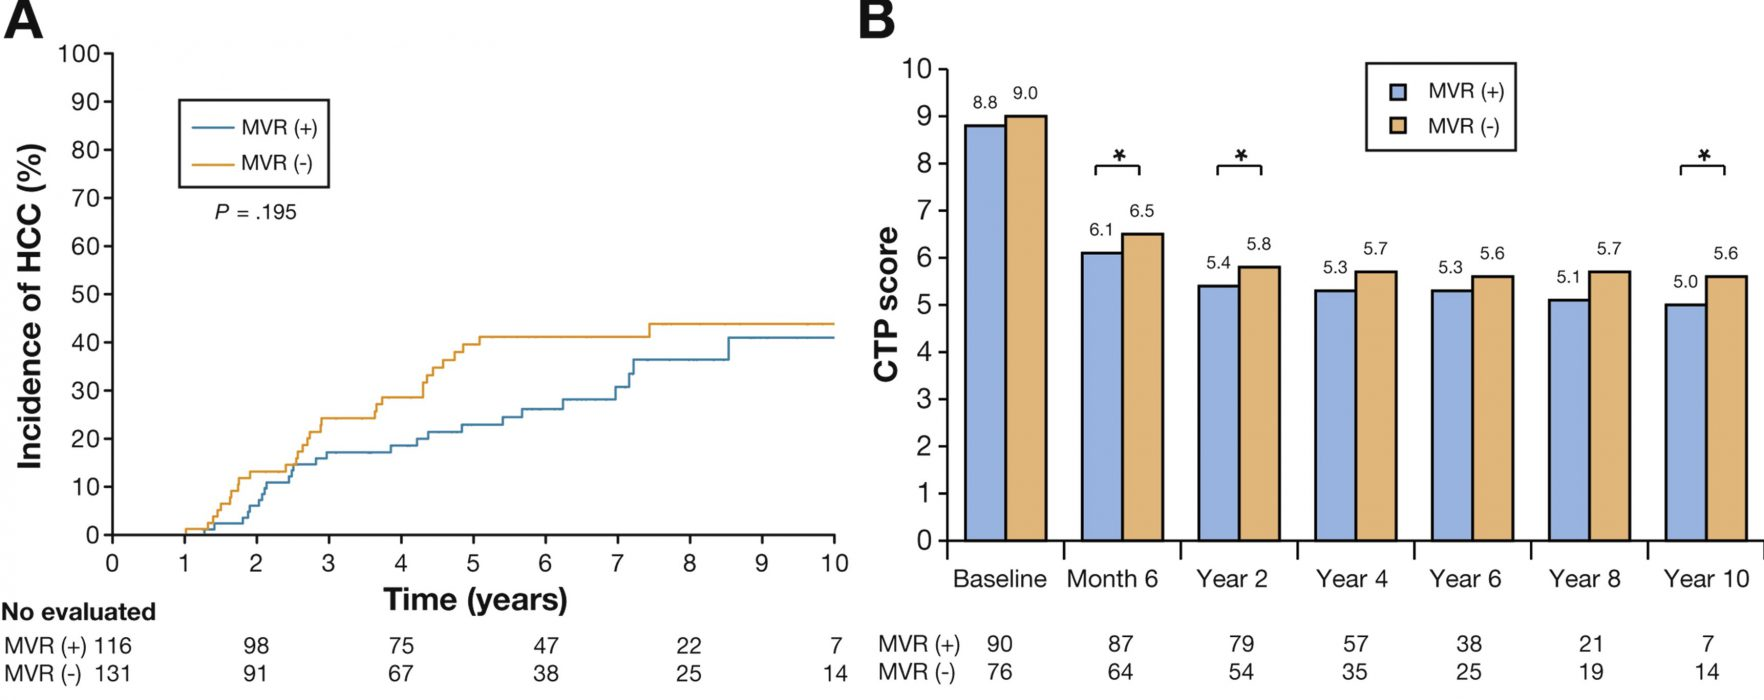 What Are the Effects of Virologic Response to Treatment on Outcomes of Patients With Chronic HBV Infection and Decompensated Cirrhosis?